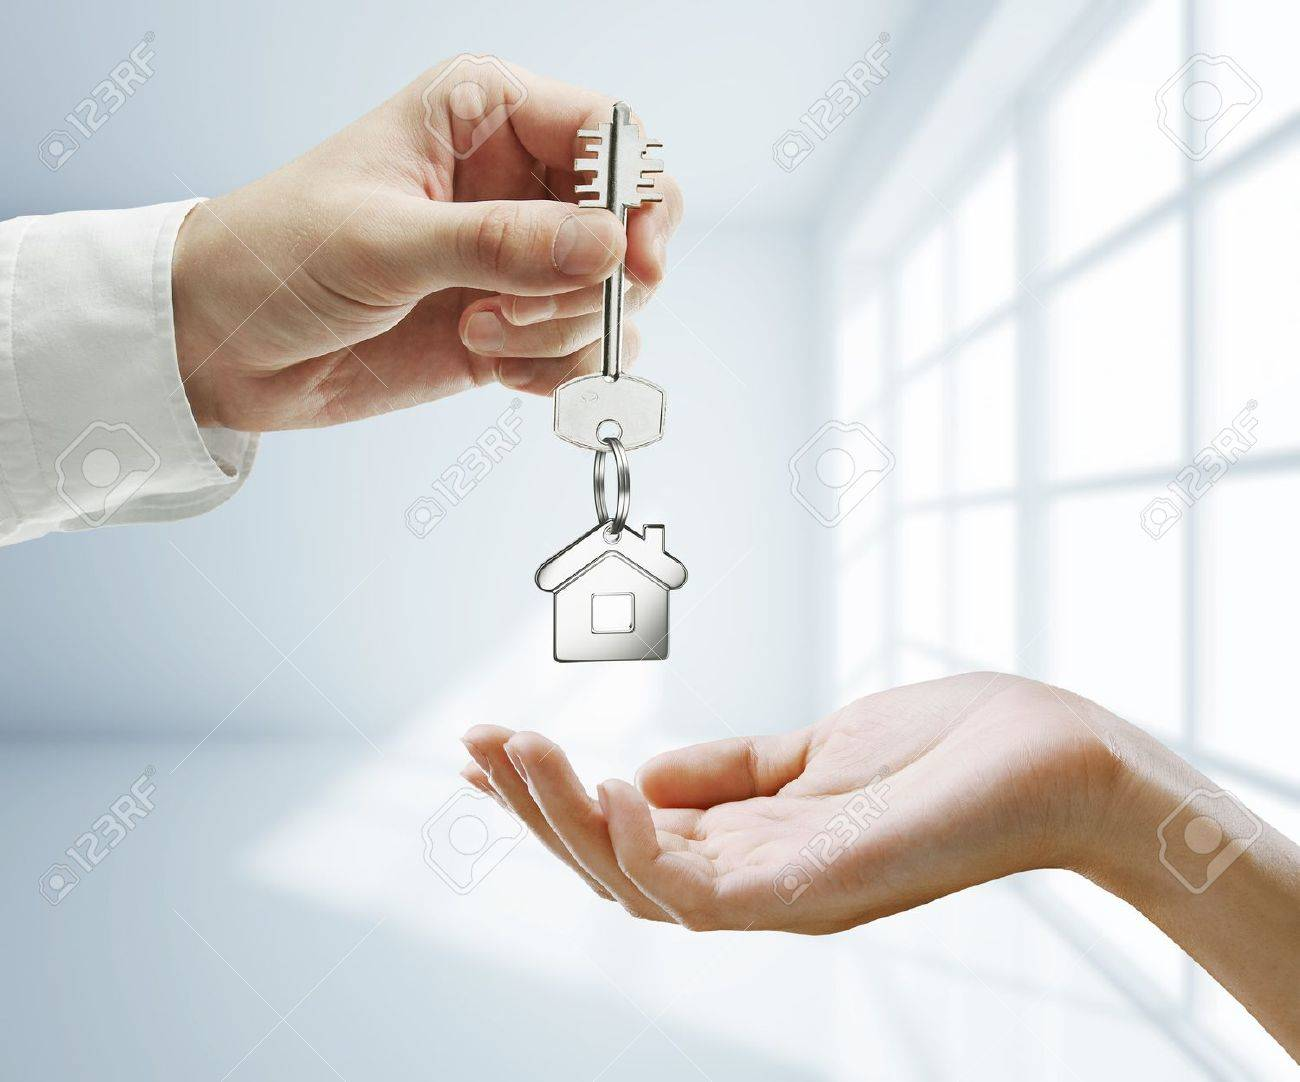 passing key against backdrop of white room Stock Photo - 15061688